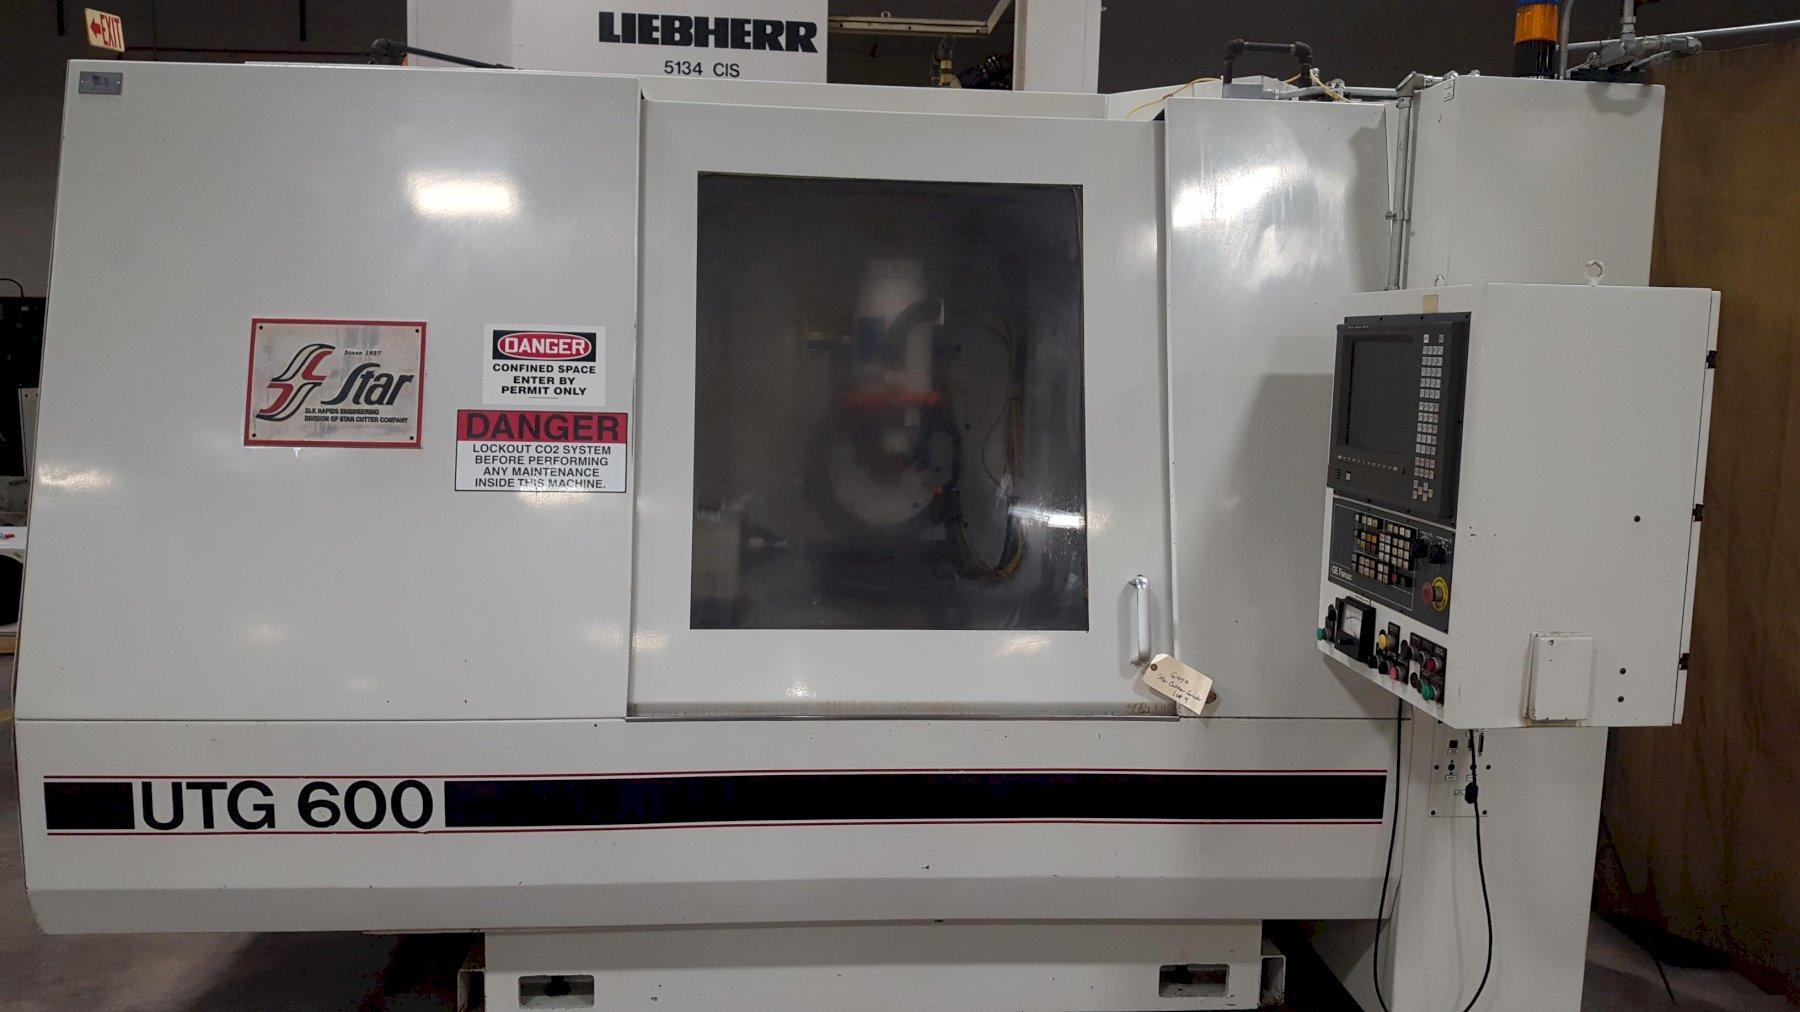 Star Cutter Model UTG600 5-Axis CNC Universal Tool Cutter and Hob Grinder